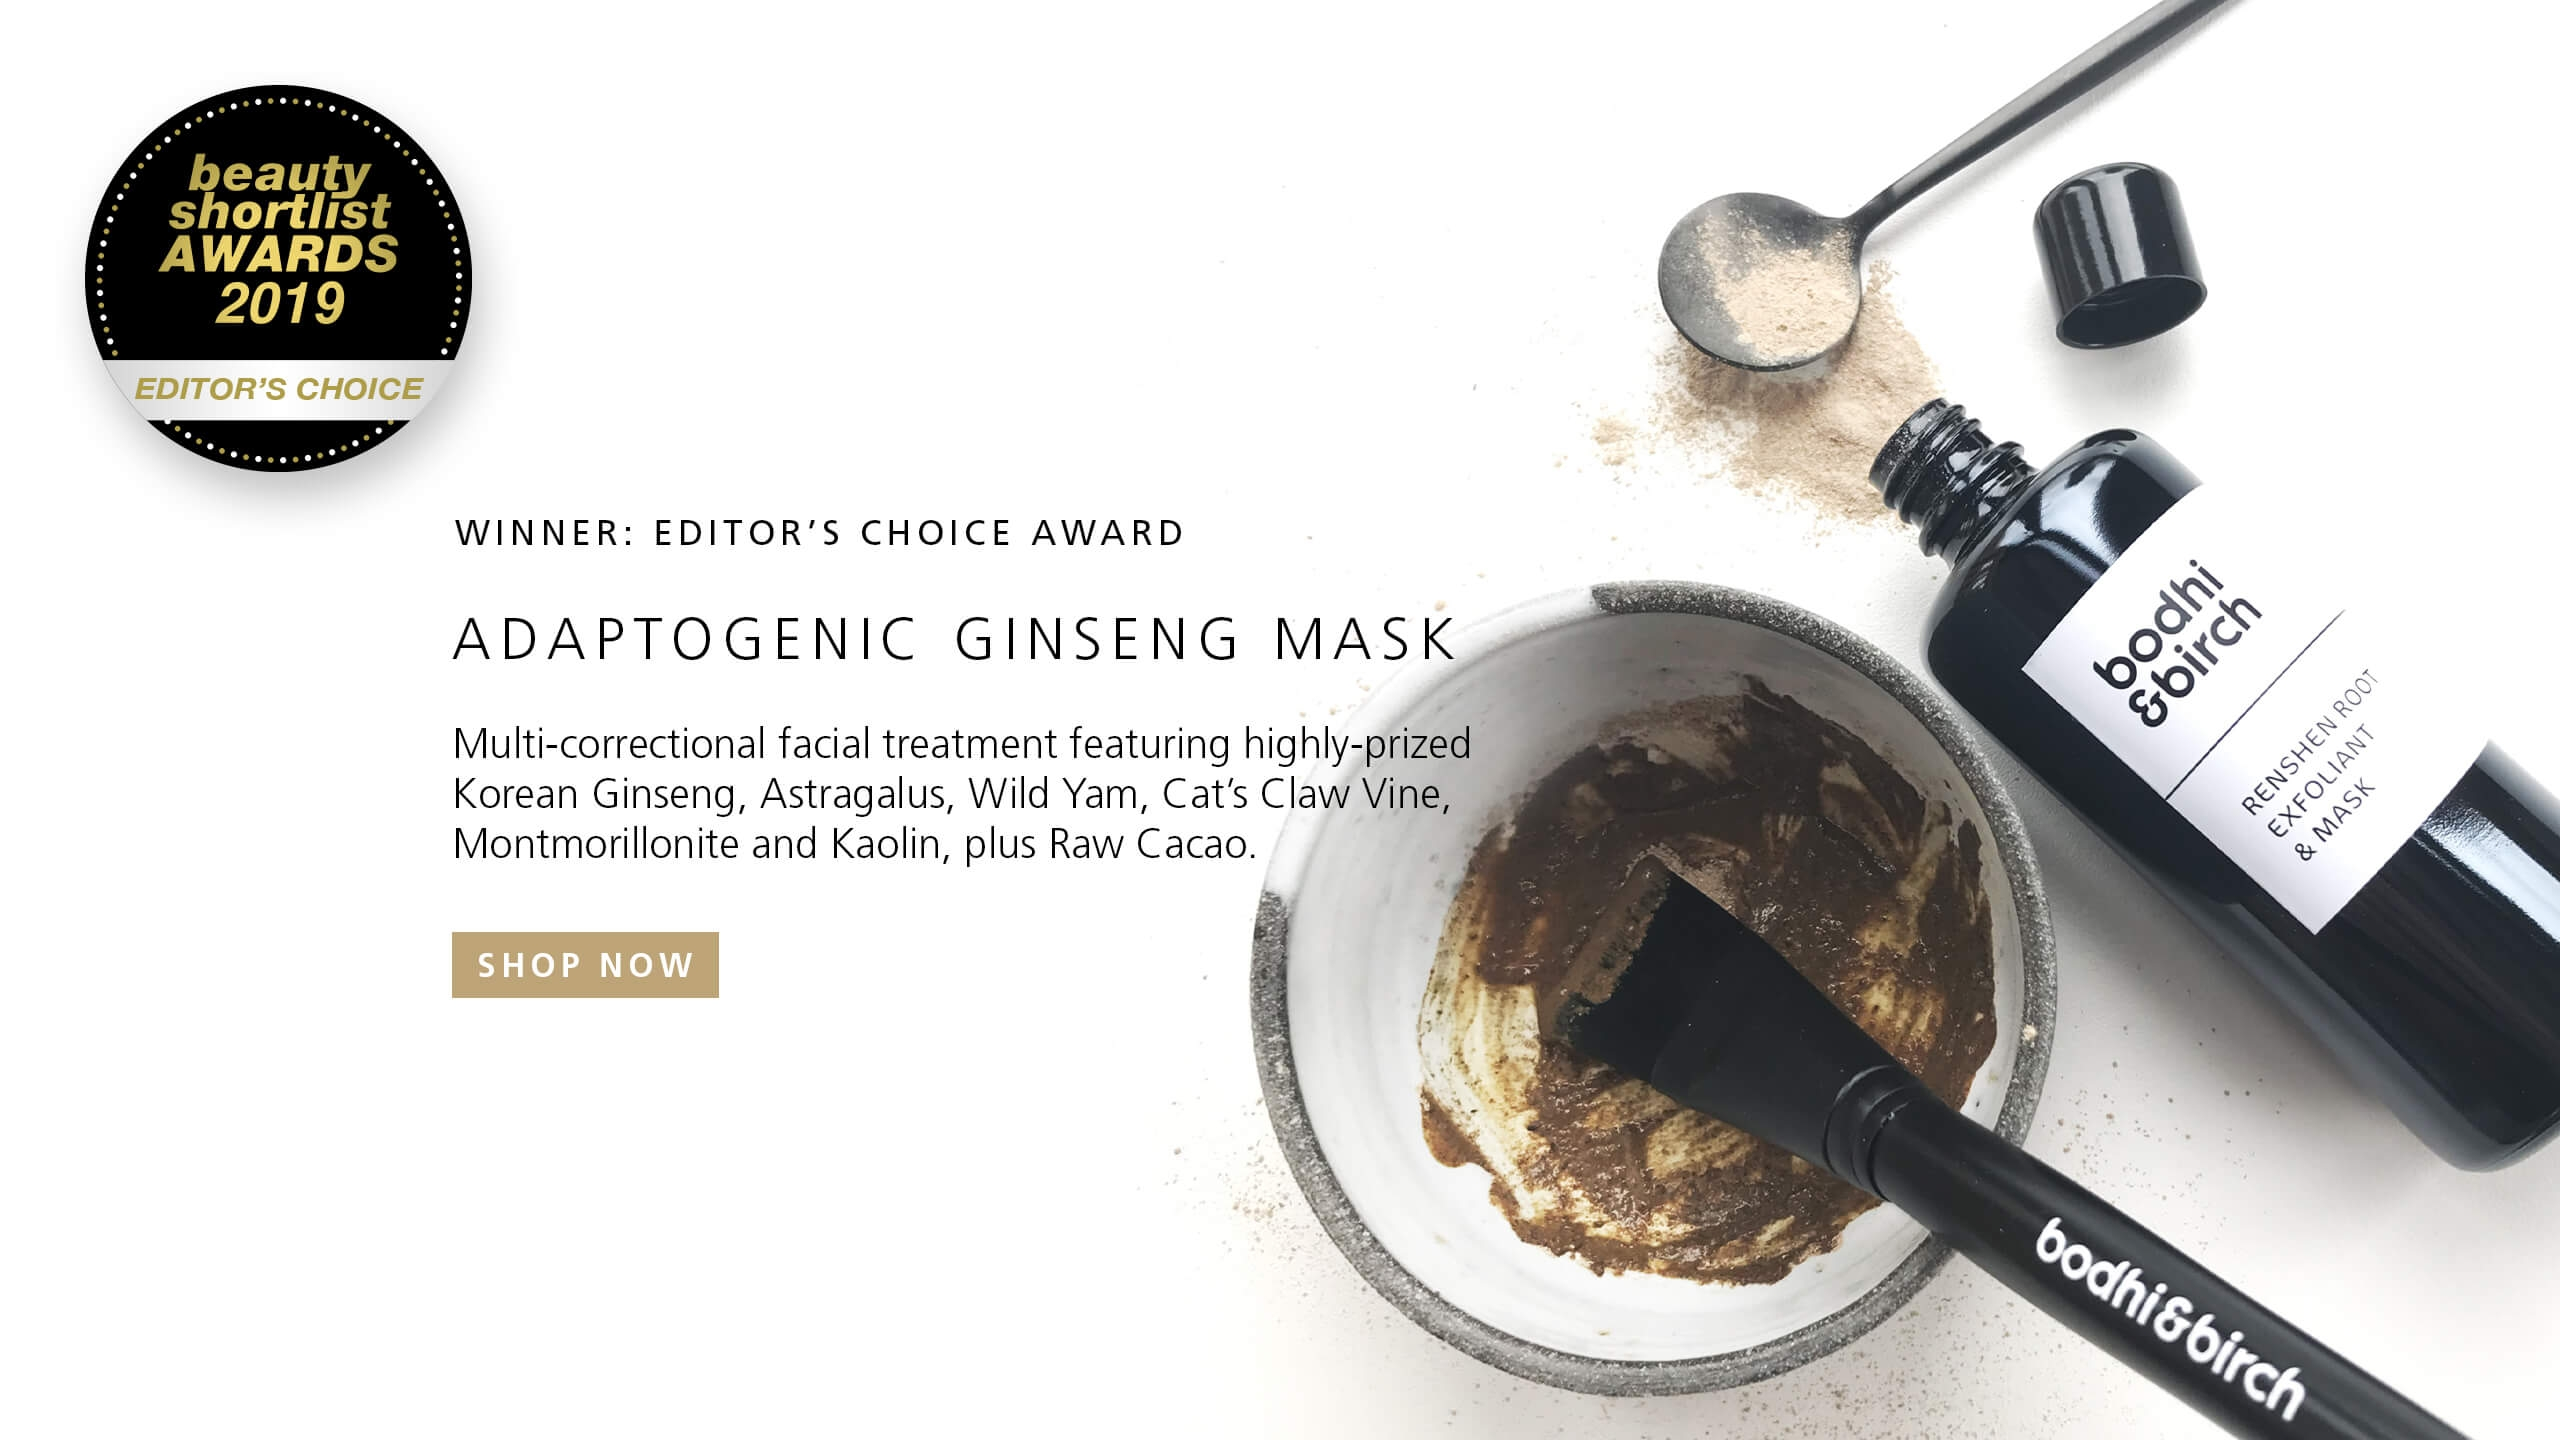 Adaptogenic Ginseng Mask